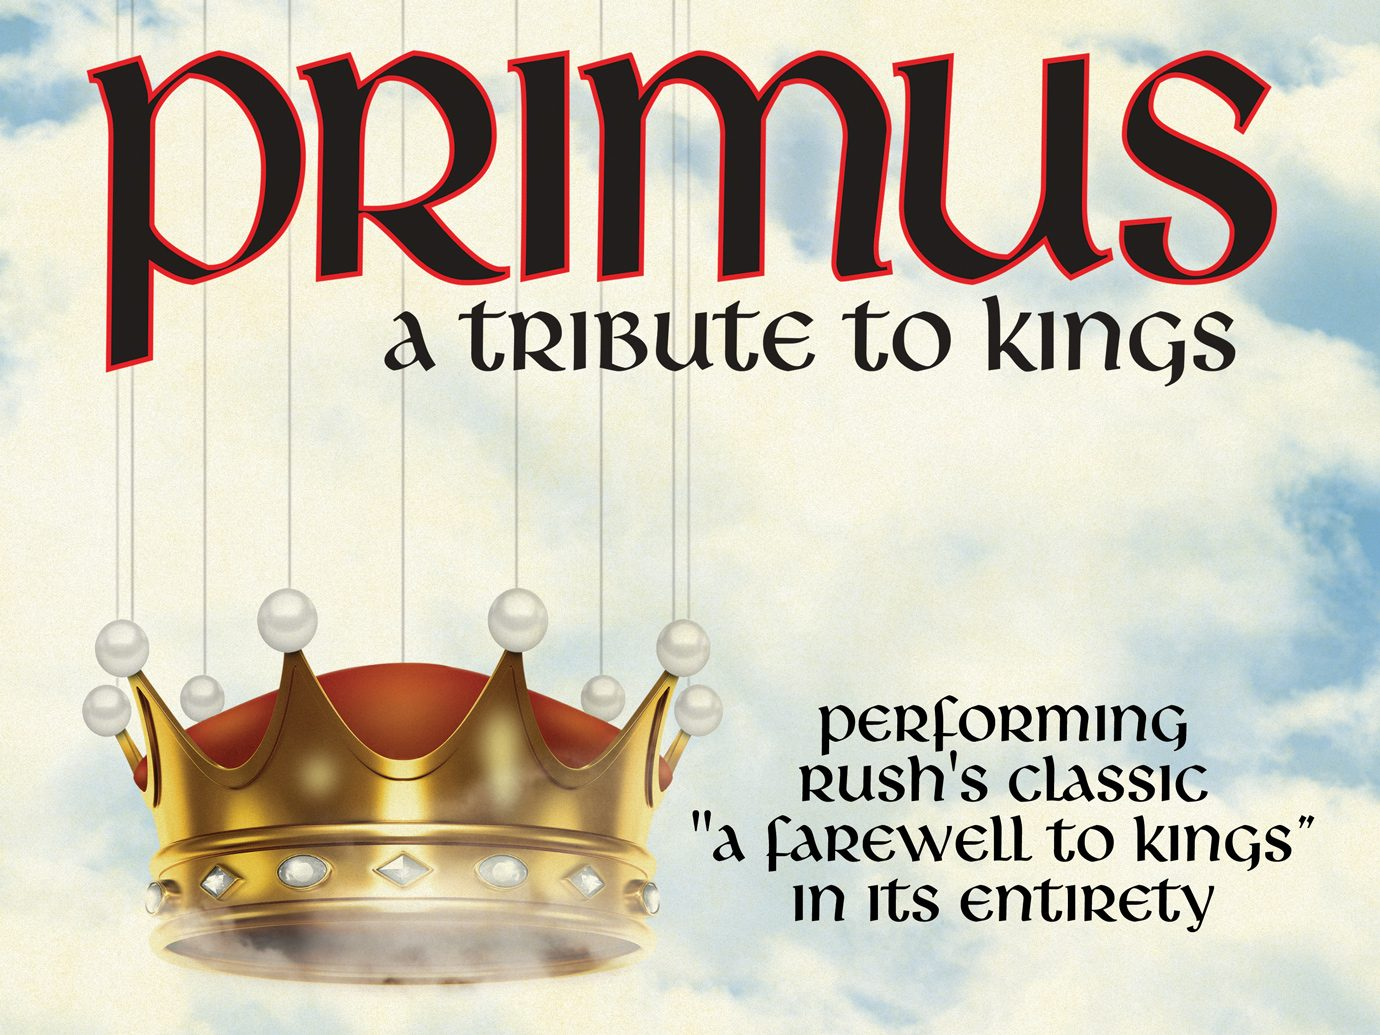 POSTPONED: Primus – A Tribute to Kings